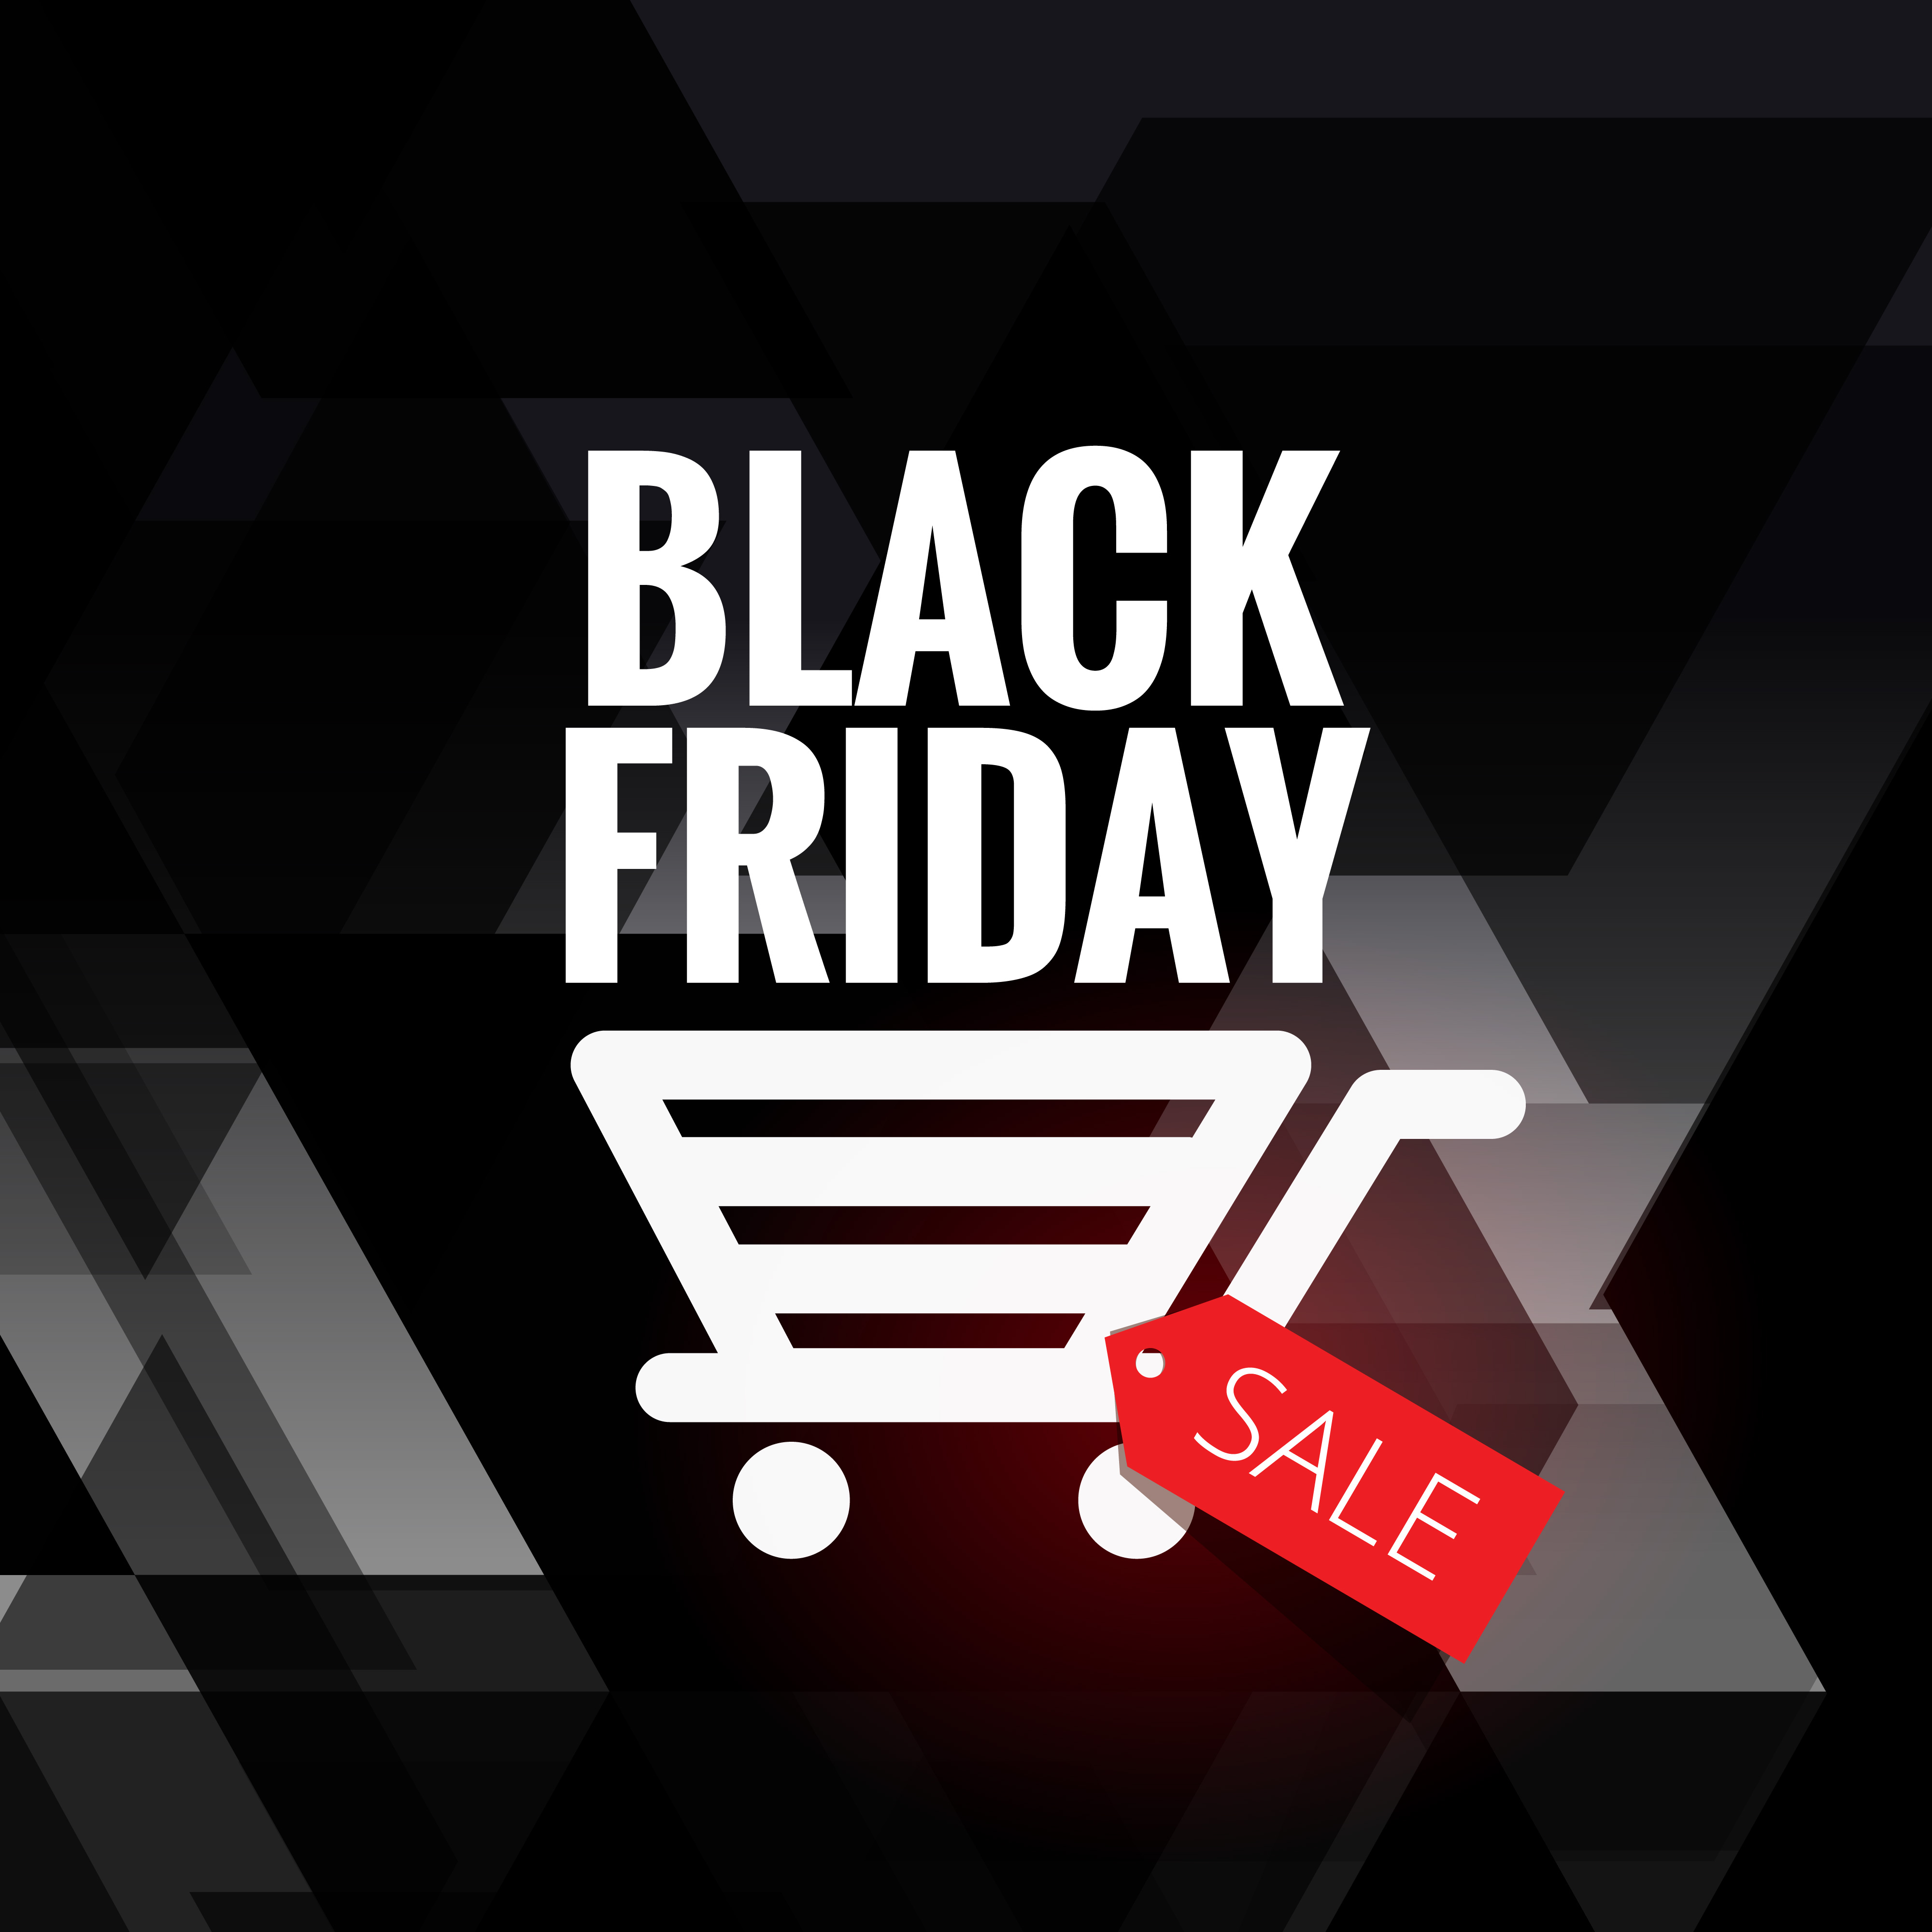 black friday sale design with cart icon download free vector art stock graphics images. Black Bedroom Furniture Sets. Home Design Ideas